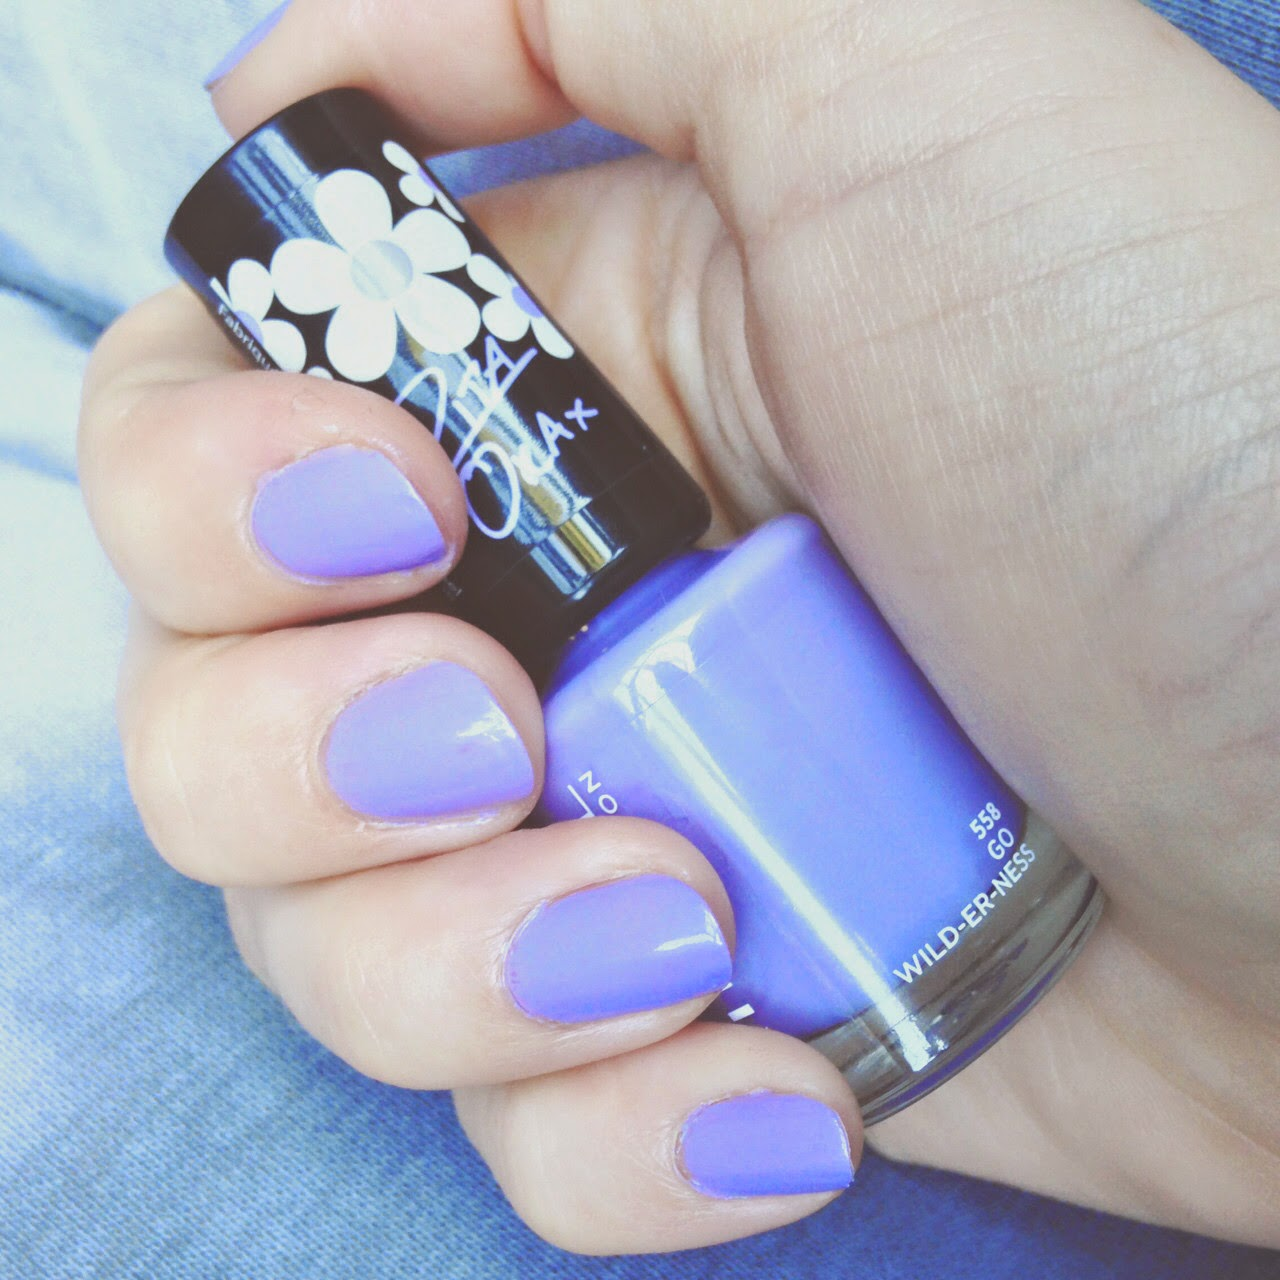 High Street Beauty Junkie: Battle Of The Lilac Nail